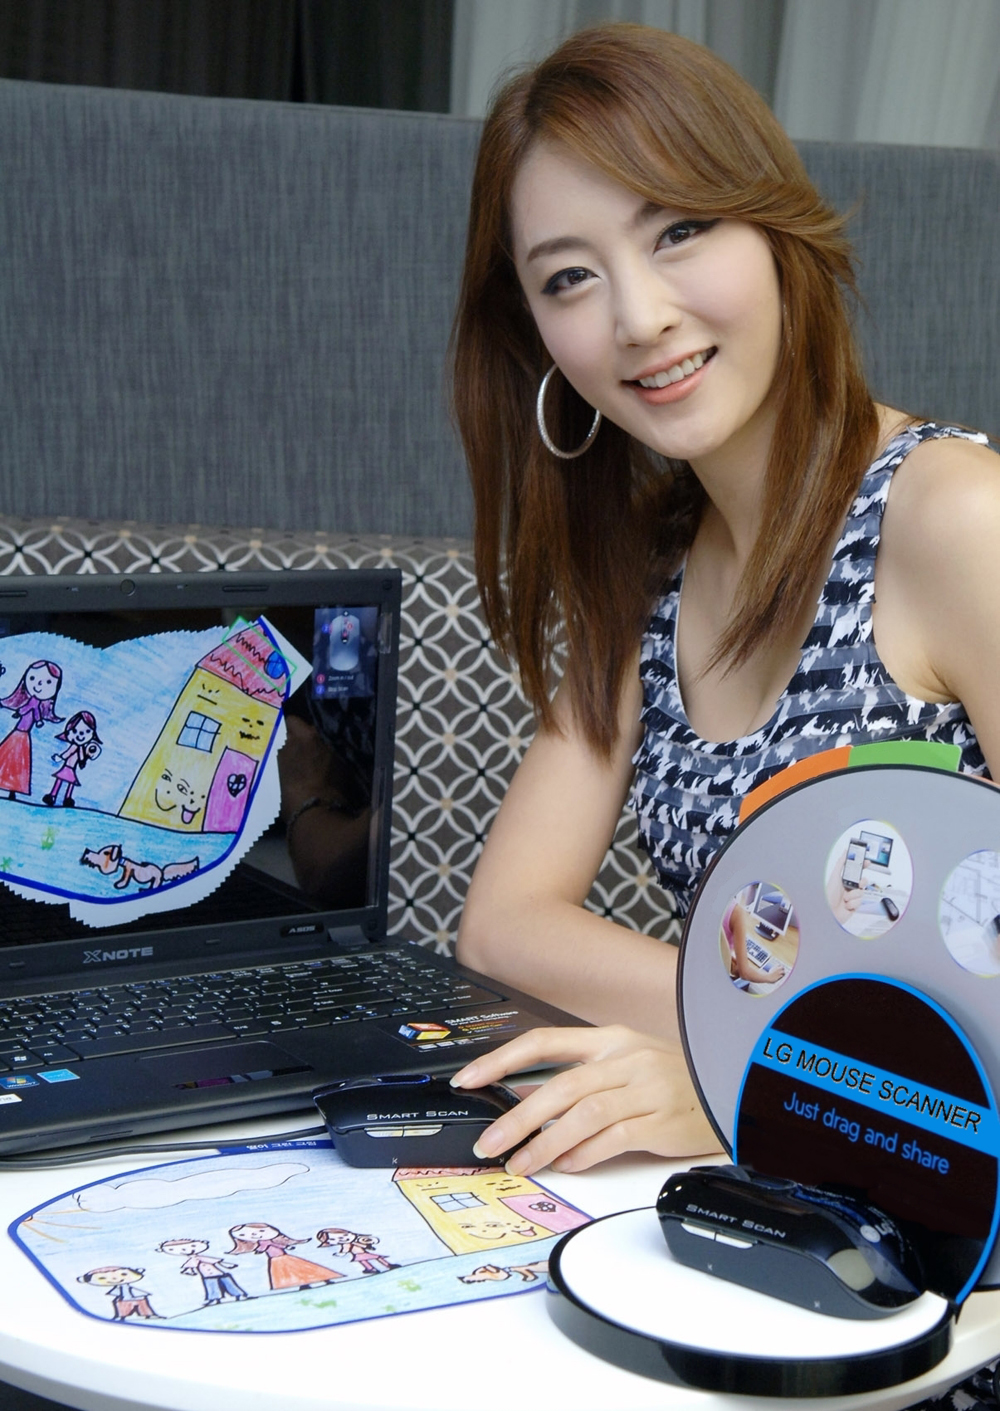 A model using LG'S MOUSE SCANNER SMART SCAN to scan a picture, just drag and scan